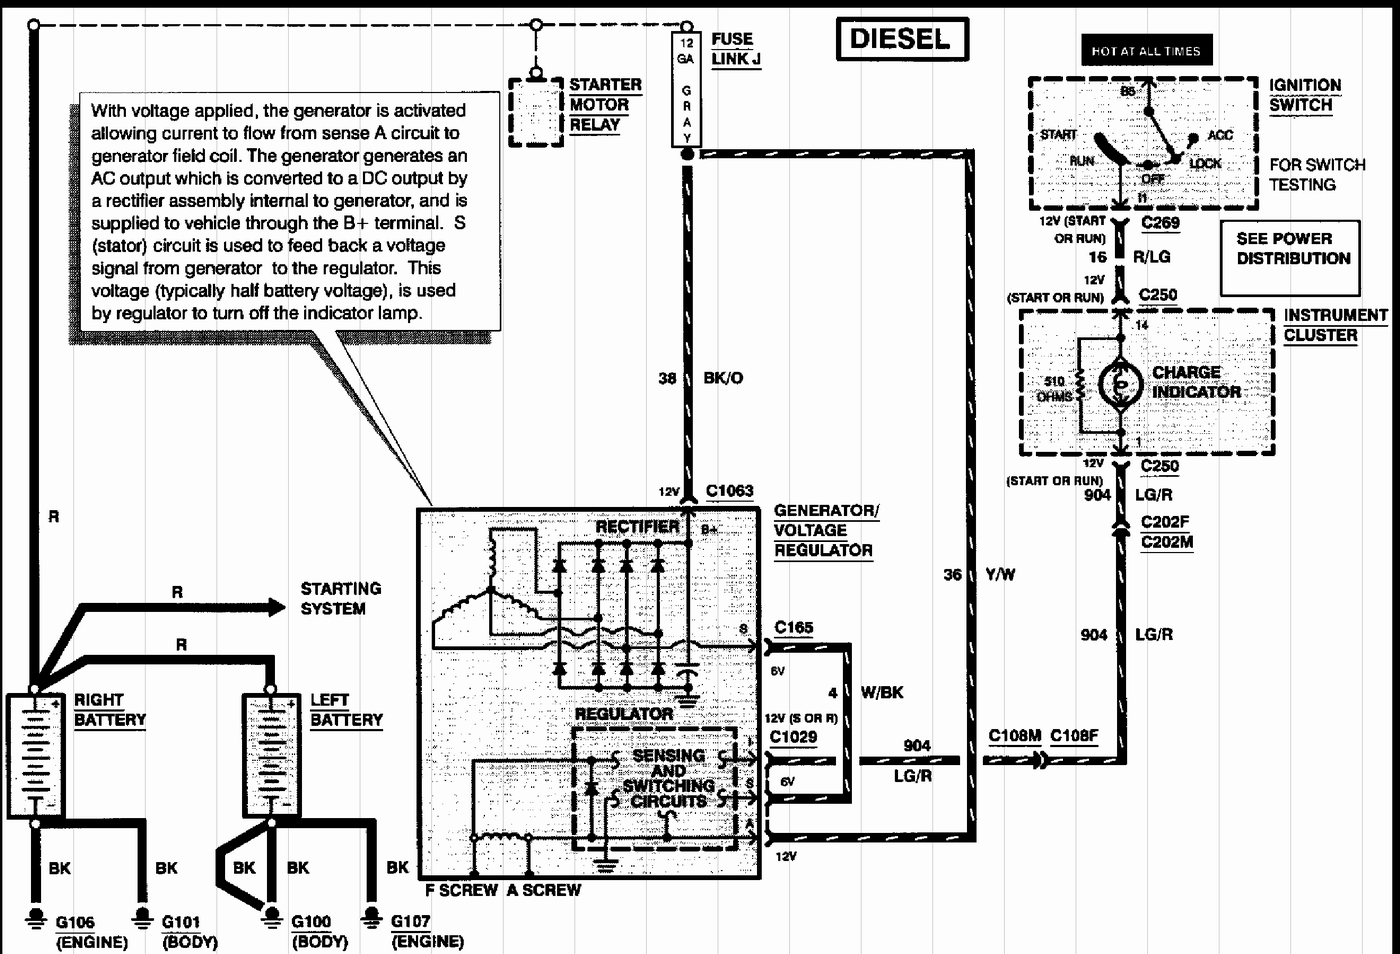 I Need A Wiring Diagram For A 97 F350 7.3 Powerstroke With E4Od - 7.3 Powerstroke Wiring Diagram